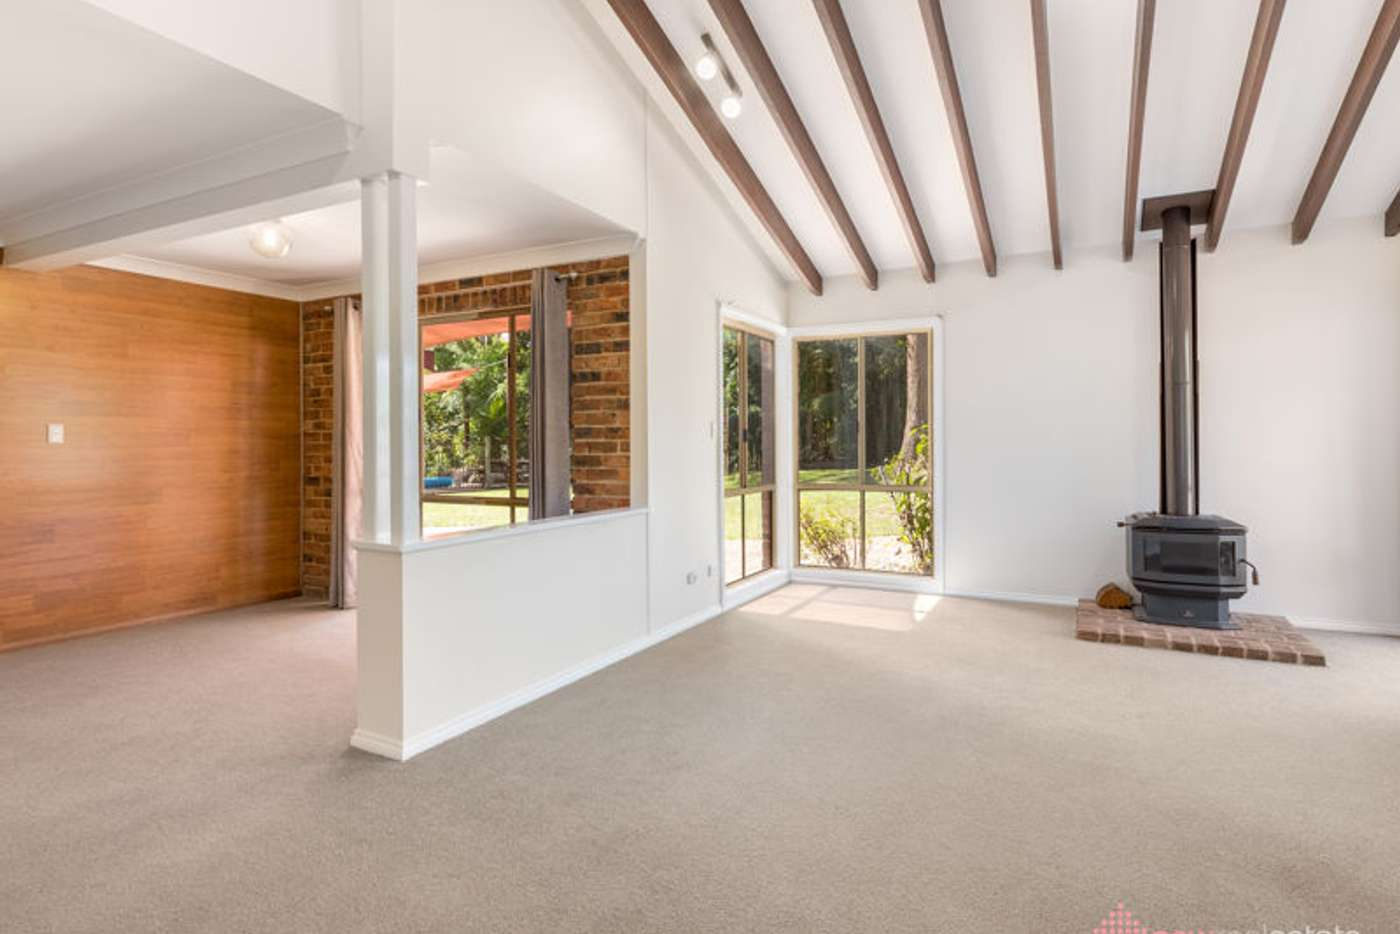 Sixth view of Homely house listing, 6 Gwen Close, Emerald Beach NSW 2456